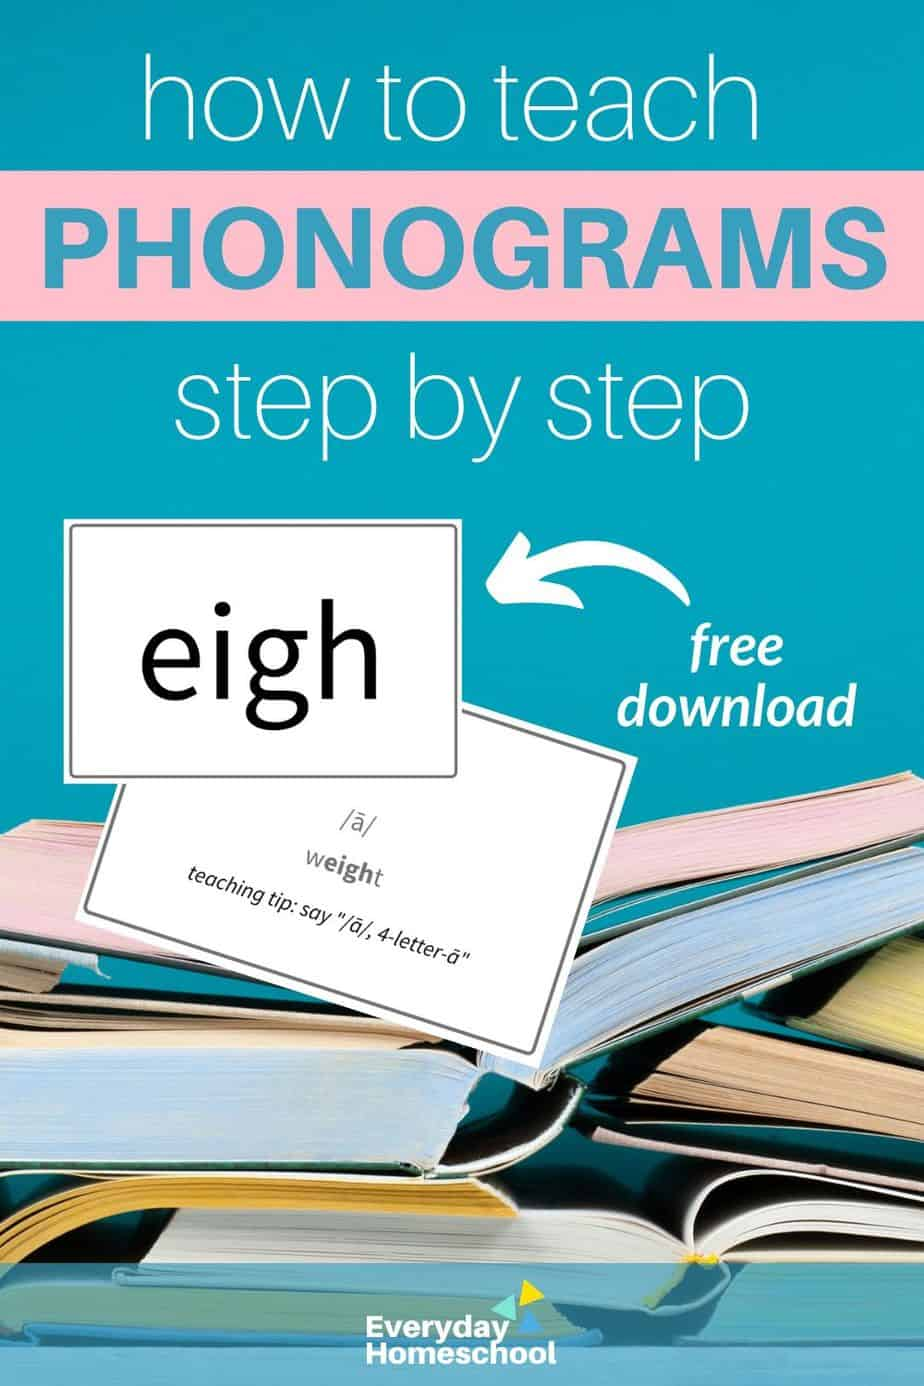 how to teach phonograms pinterest image